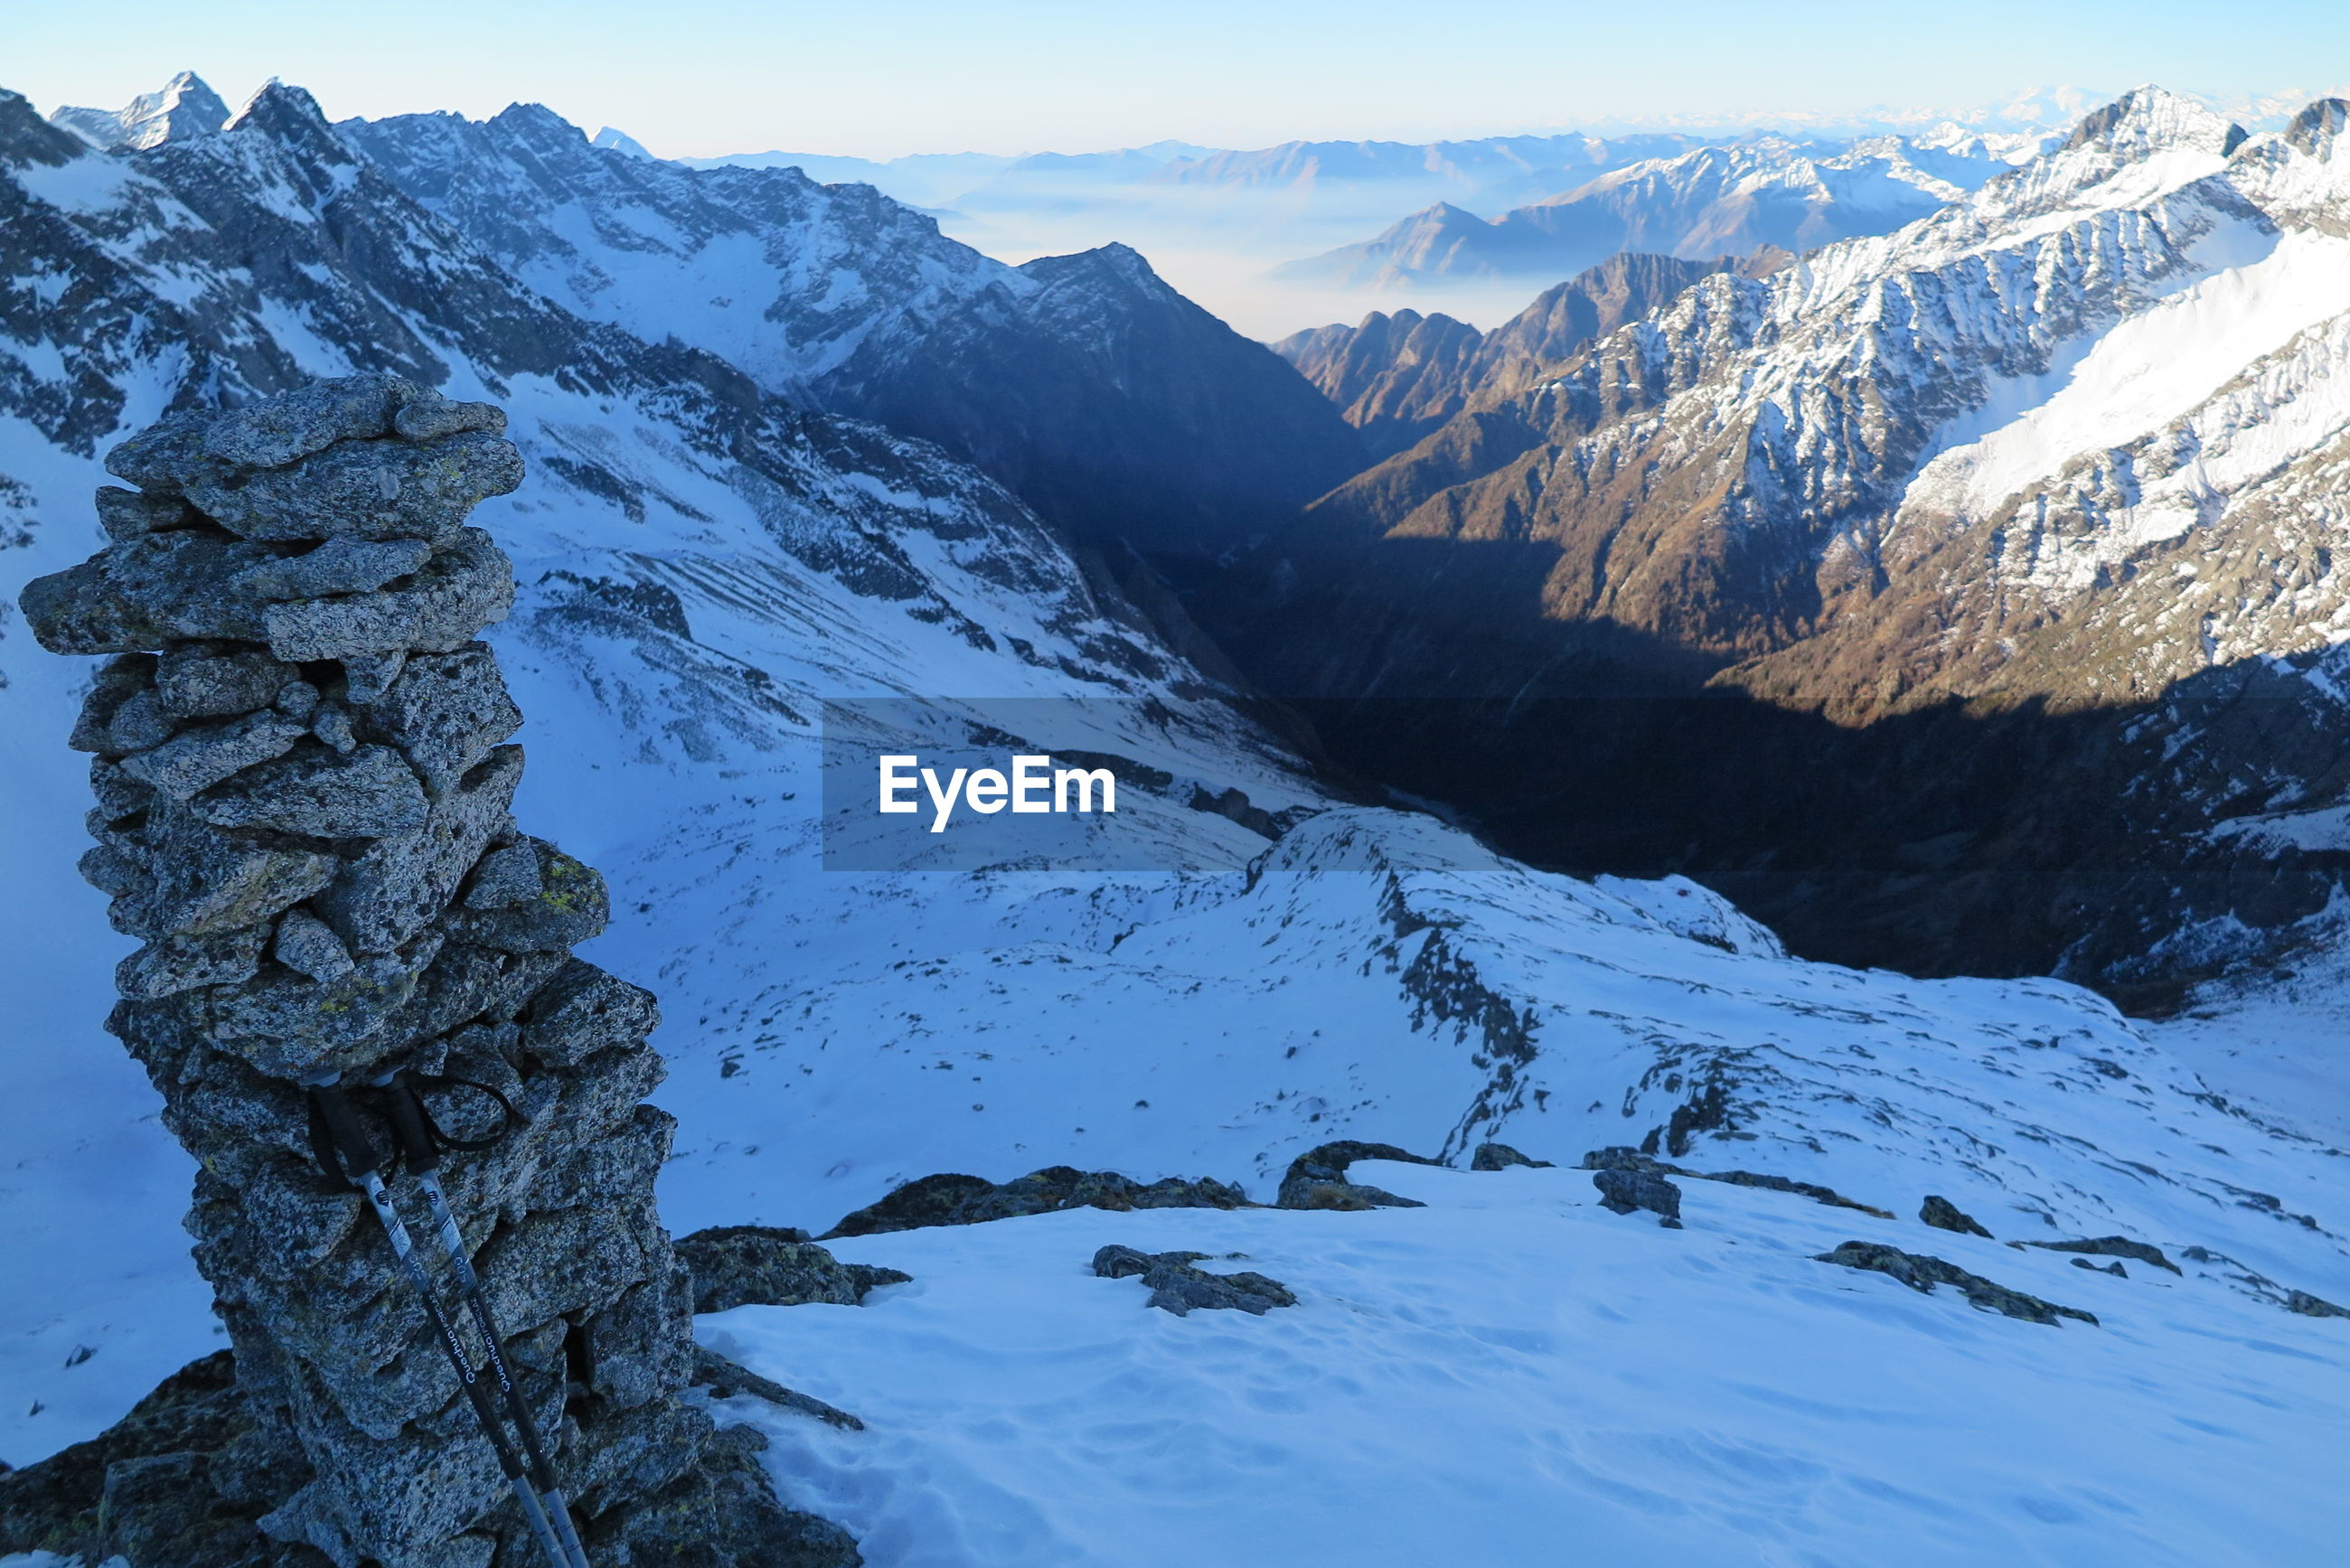 mountain, snow, nature, beauty in nature, mountain range, beauty, outdoors, scenics, landscape, cold temperature, no people, day